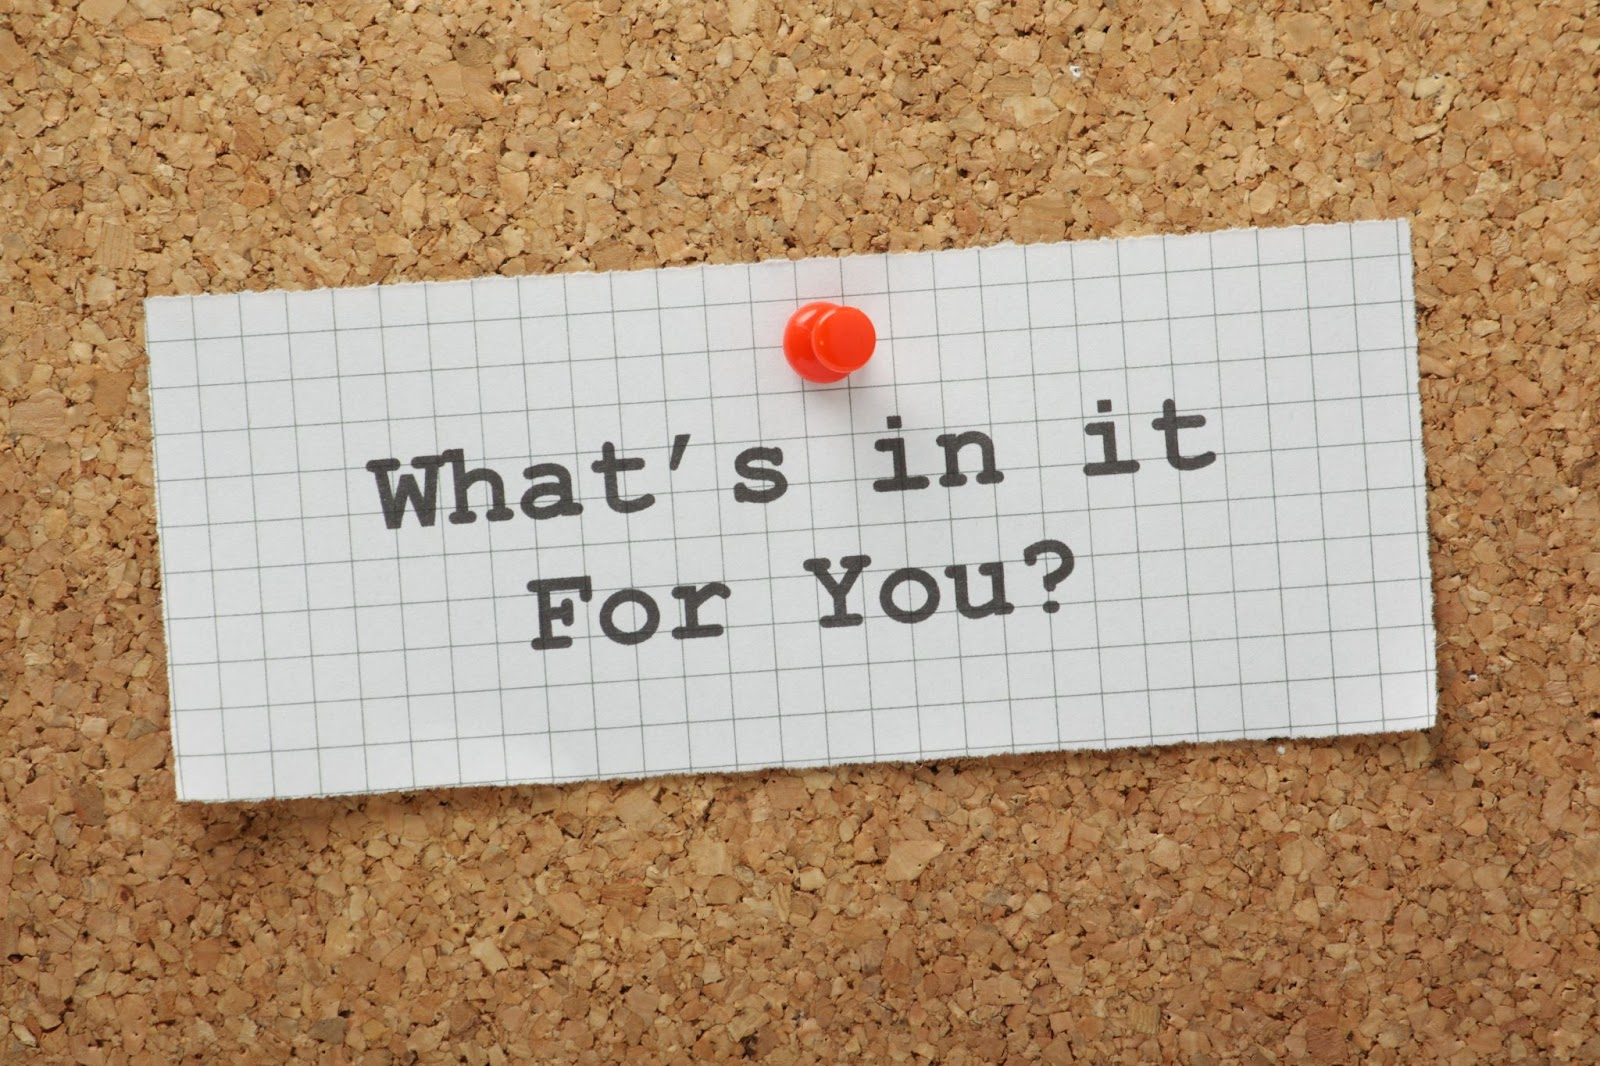 What's in it for you?